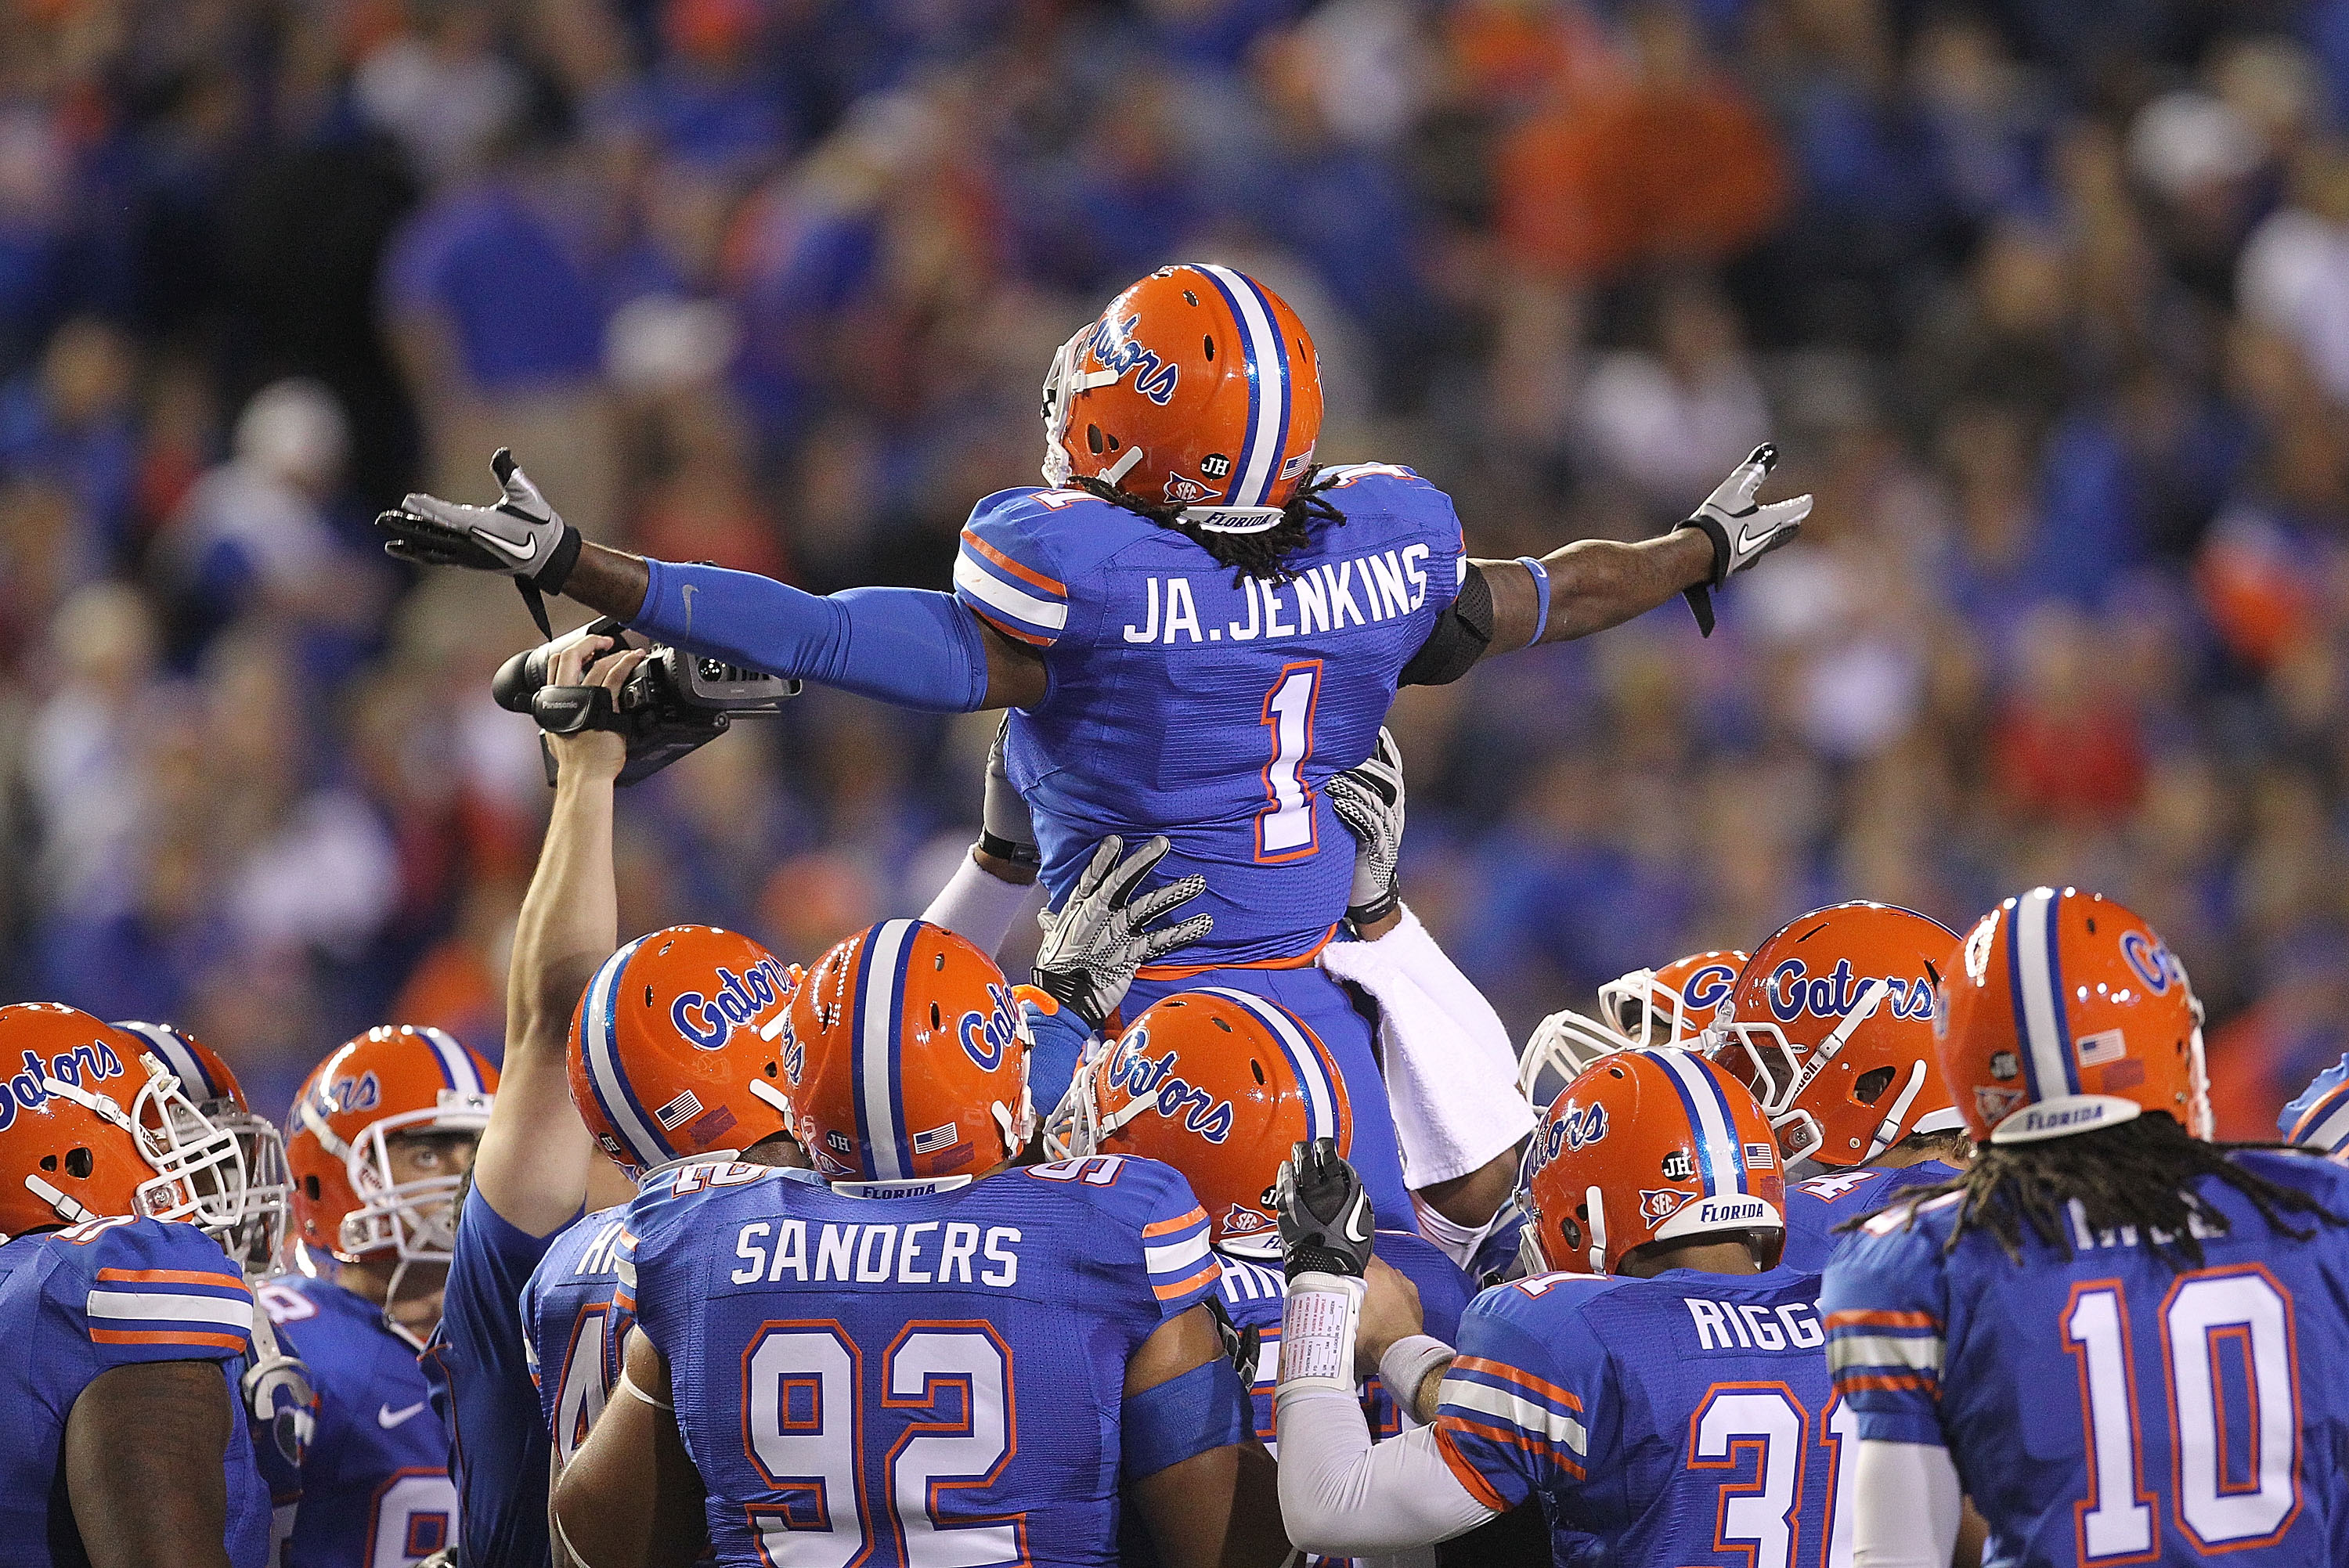 GAINESVILLE, FL - NOVEMBER 13: Janoris Jenkins #1 of the Florida Gators gets the crowd up during a game against the South Carolina Gamecocks at Ben Hill Griffin Stadium on November 13, 2010 in Gainesville, Florida.  (Photo by Mike Ehrmann/Getty Images)